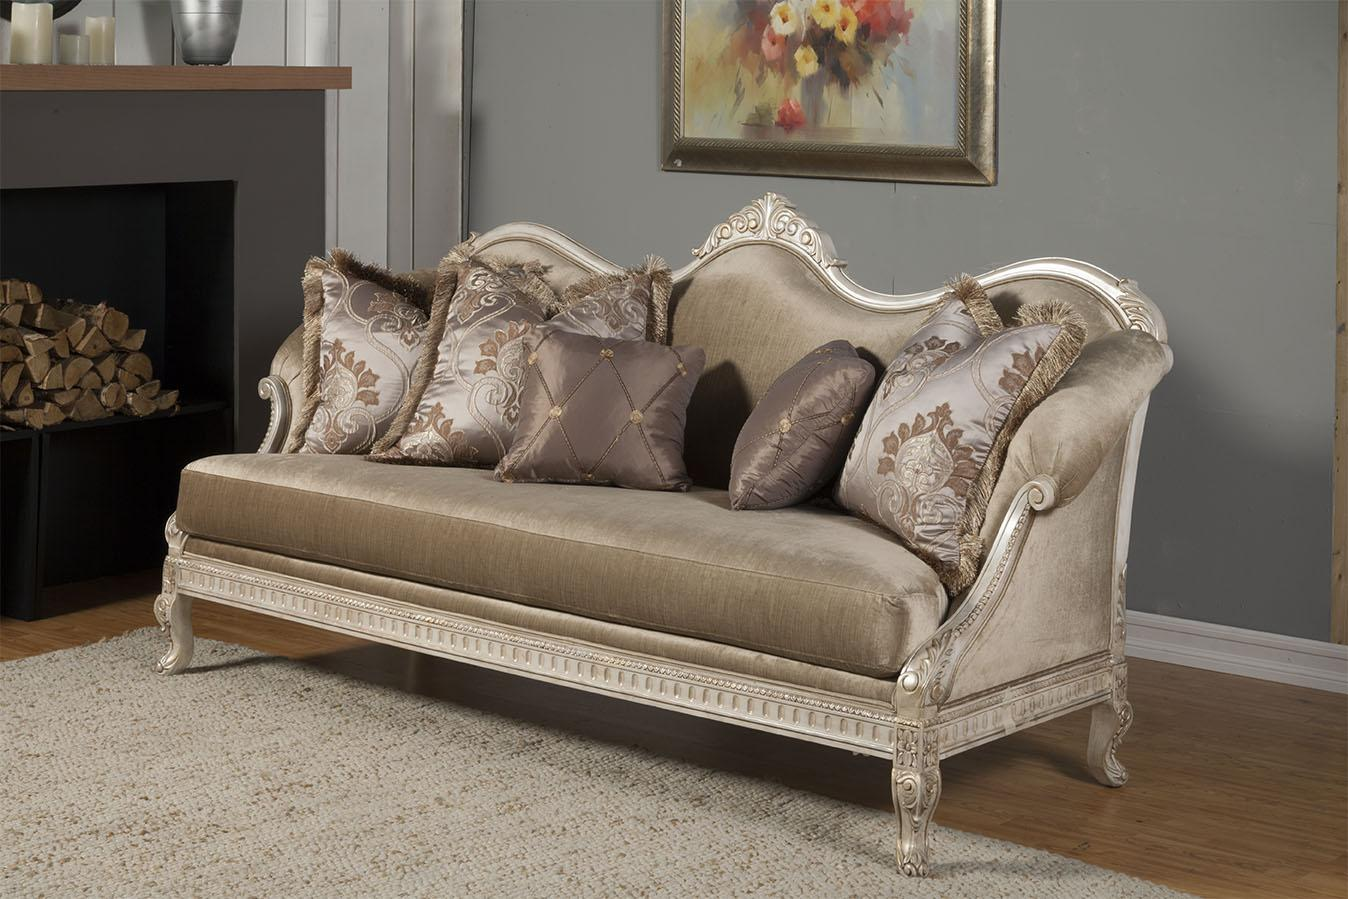 Classic, Traditional Gold, Silver, Pearl Chenille and Fabric, Wood, Solid Hardwood Sofa 1 pcs Perla  by Benneti